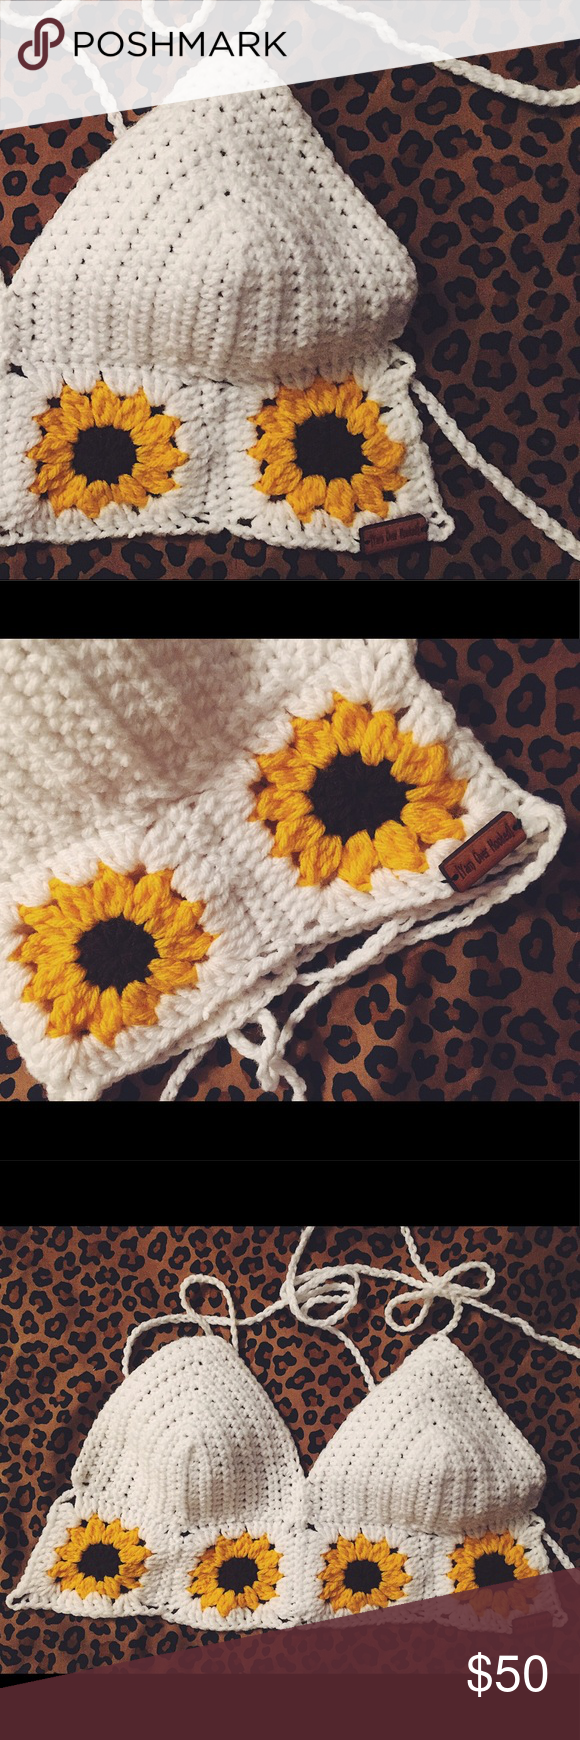 bb7a3cf4f30b38 Sunflower Crochet Top • brand new bought off Etsy   never wore • sunflower  crochet top • strappy detailing in the back Tops Crop Tops